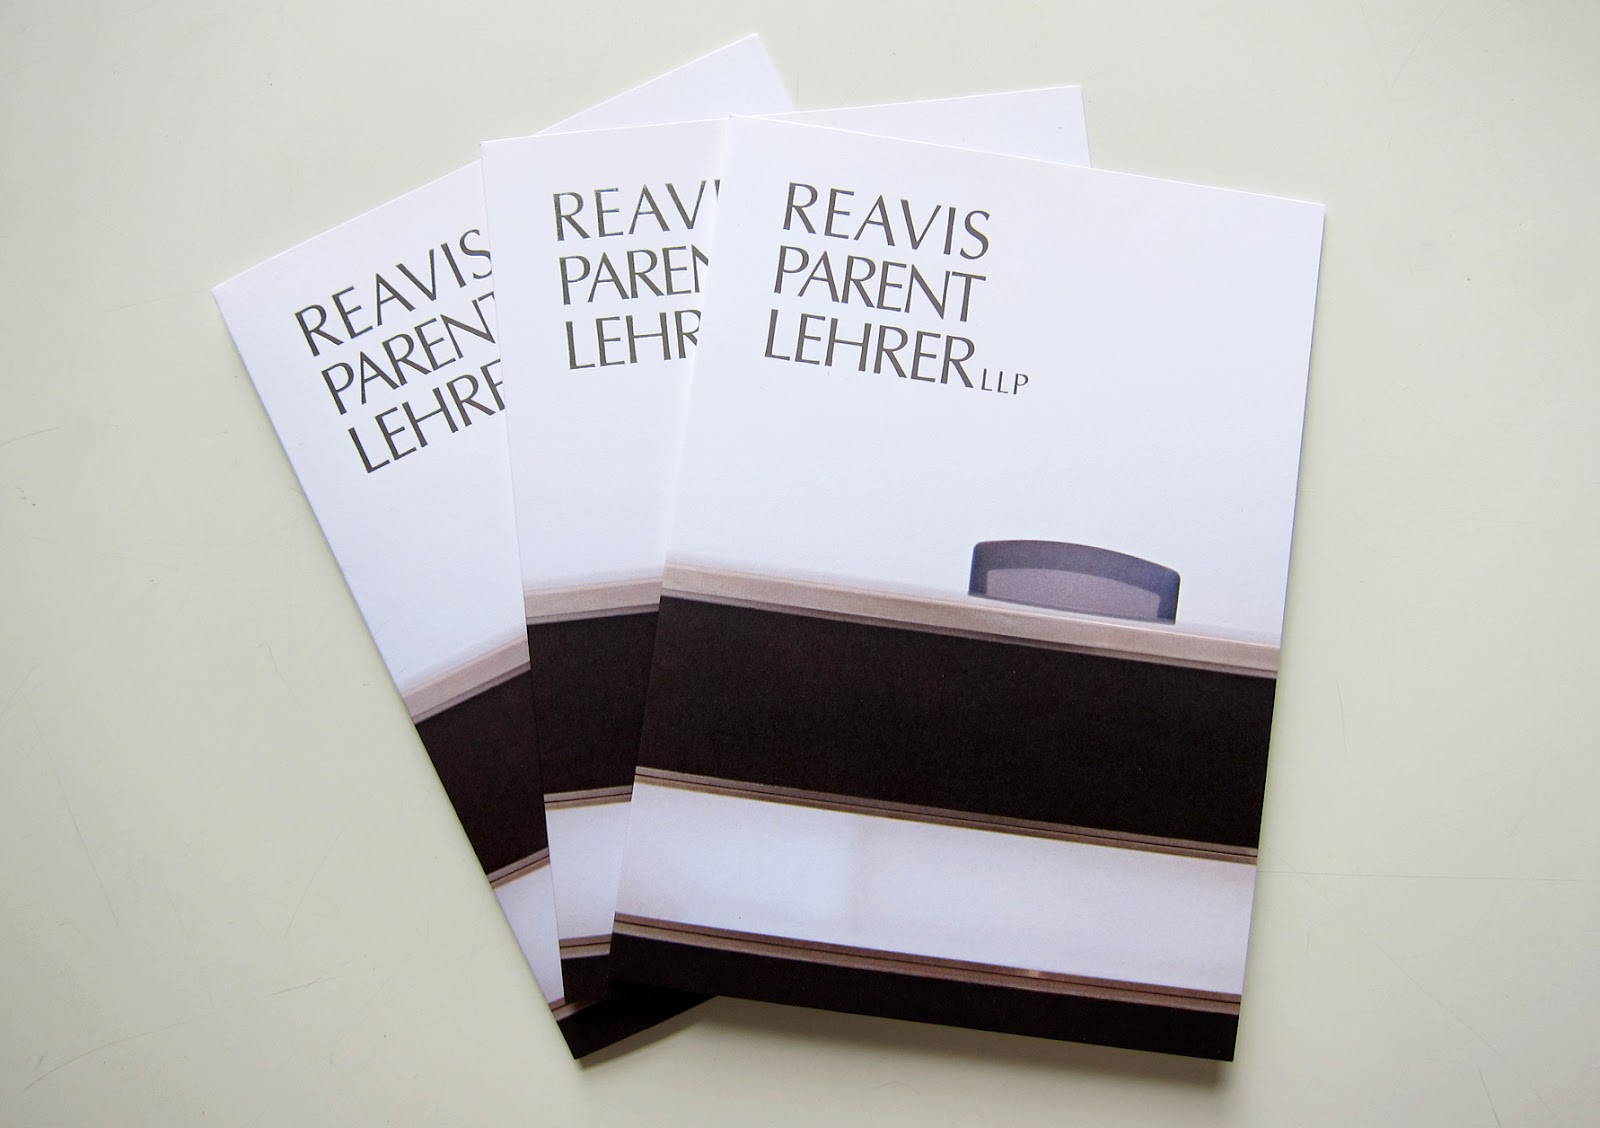 Lehrer architects office design Studio We Just Designed Additional Marketing Materials For One Of Our Longstanding Clients Reavis Parent Lehrer Llp Initiated By Mads Office Design At 41 Pinterest Matiz Architecture And Design Mad Branding For Reavis Parent Lehrer Llp